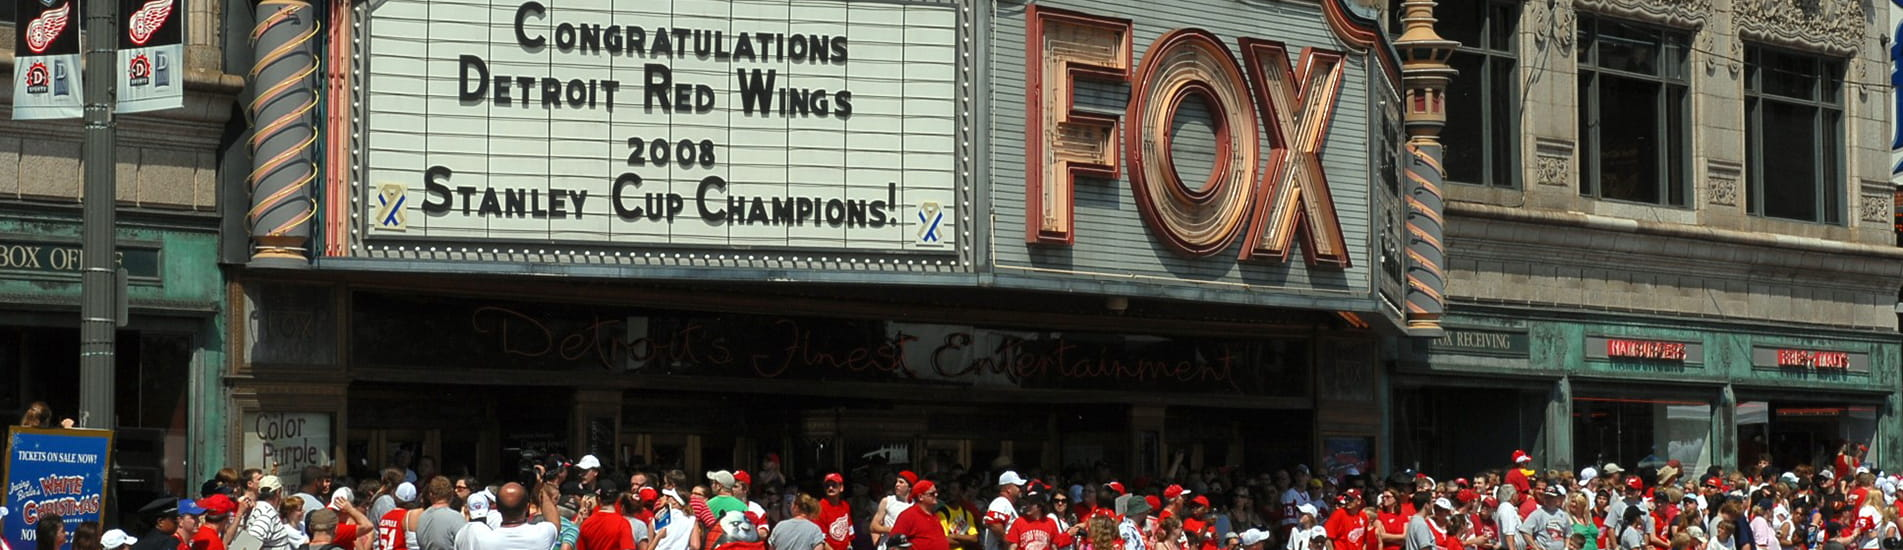 Detroit Red Wings 2008 Stanley Cup Champion celebration in front of the Fox theater.